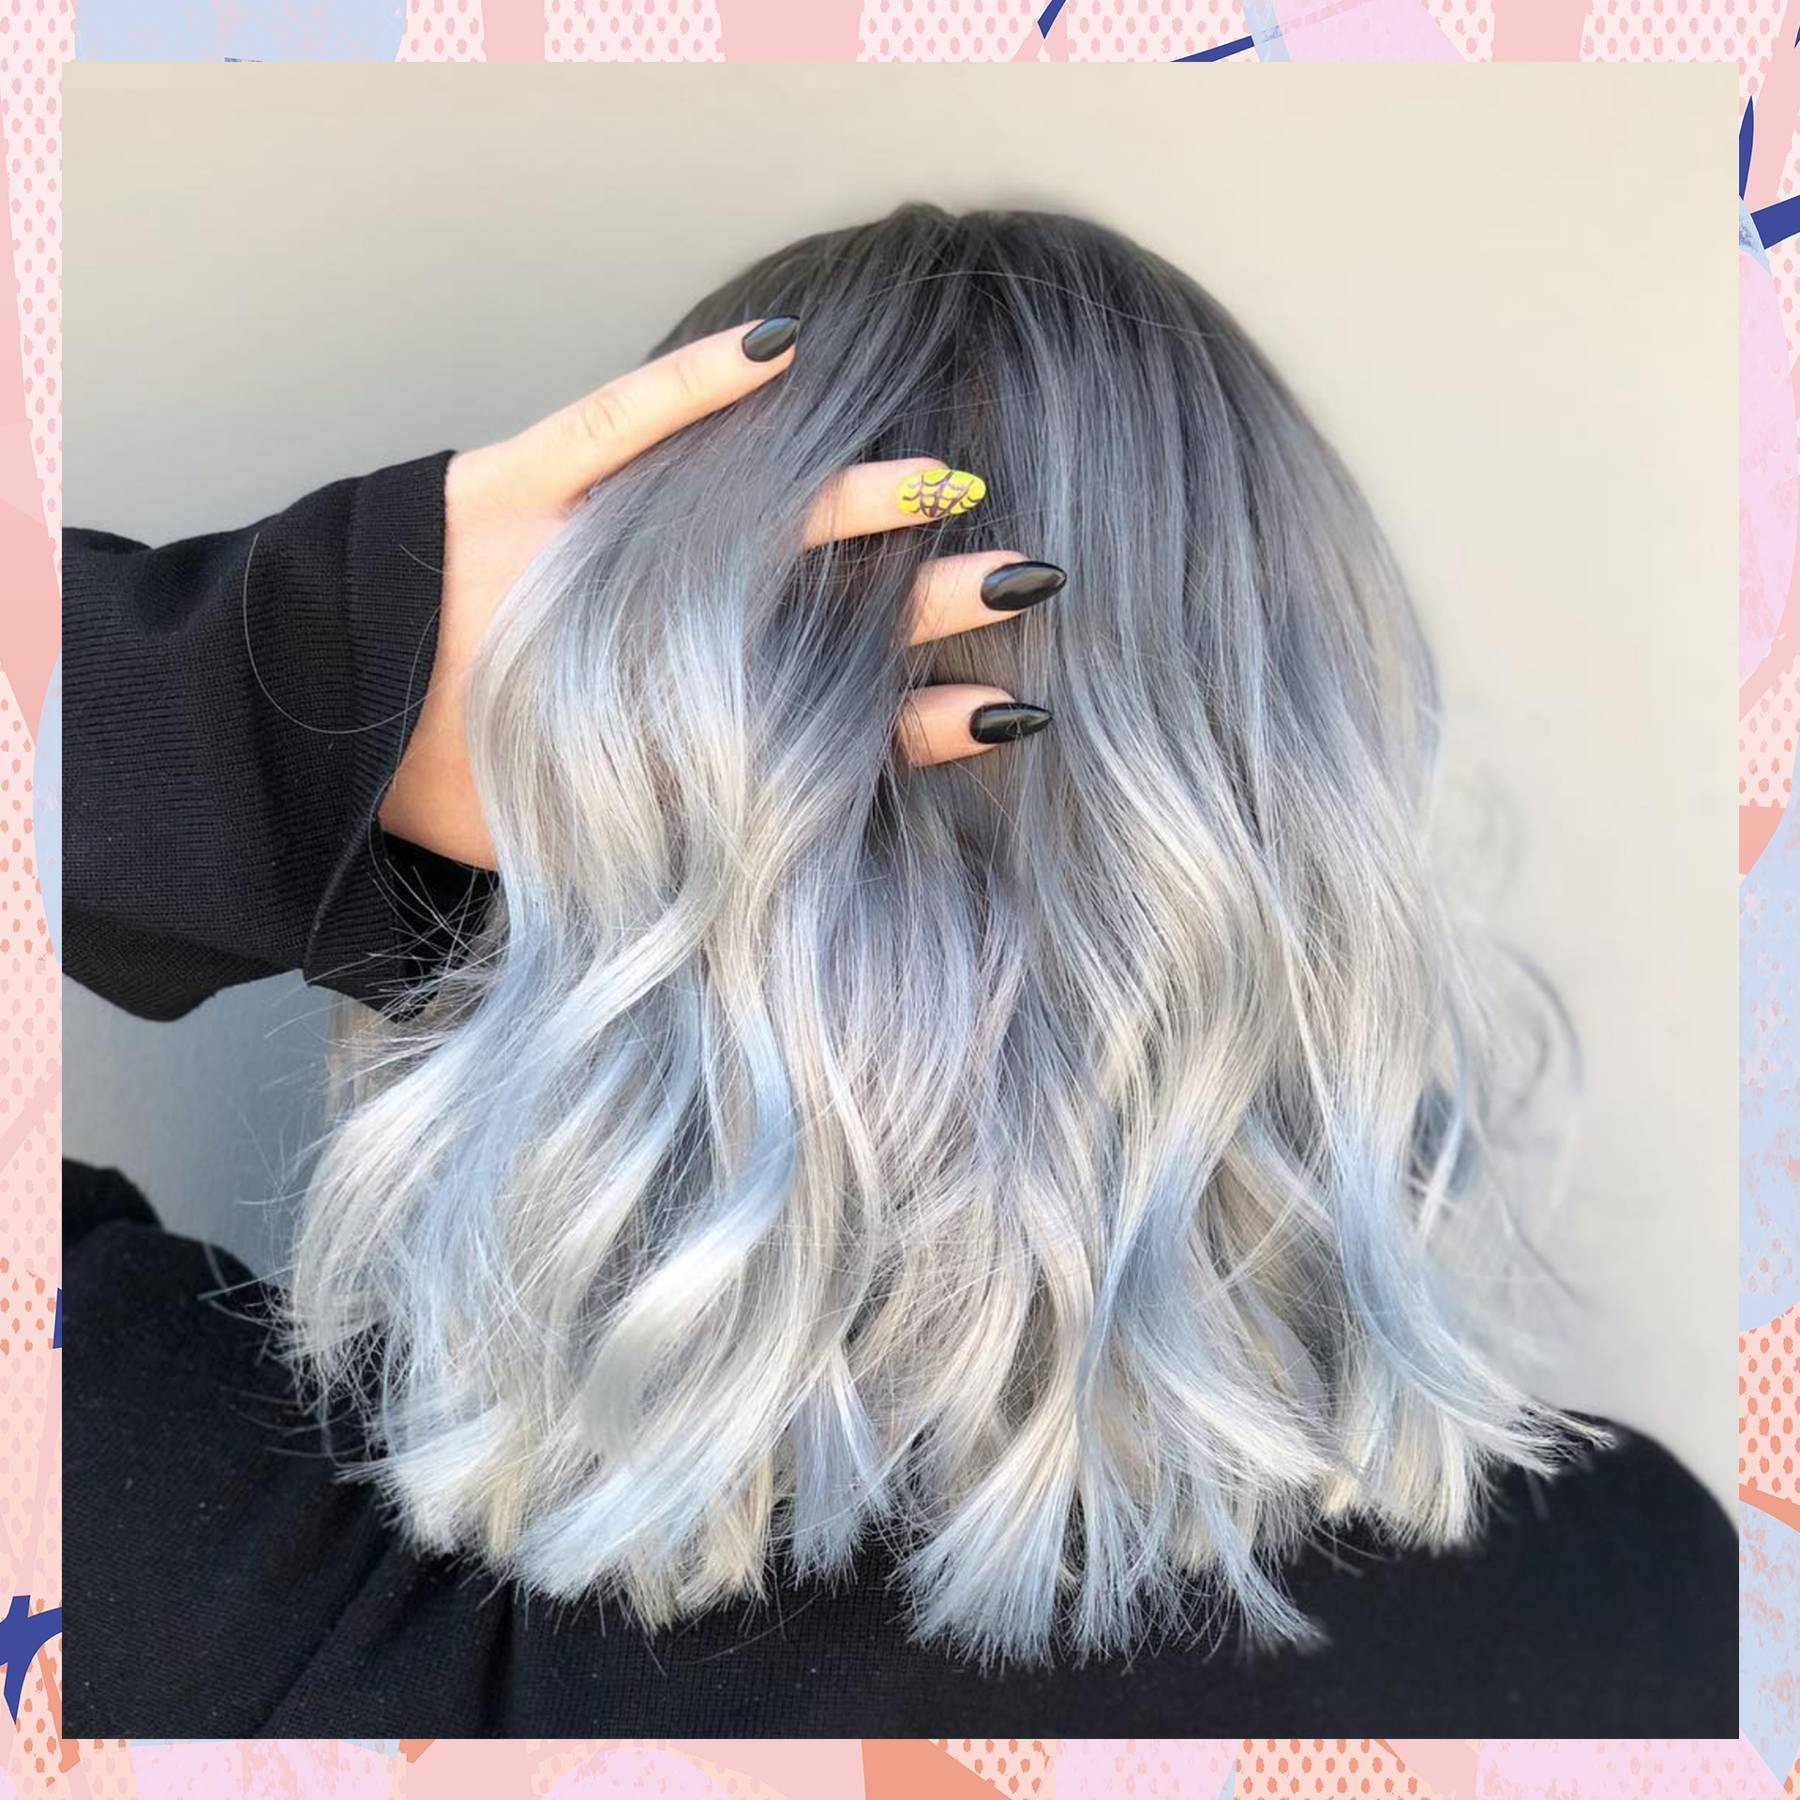 How To Get Grey Hair: A Guide To 2018's Silver Hair Colour Trend | Glamour UK